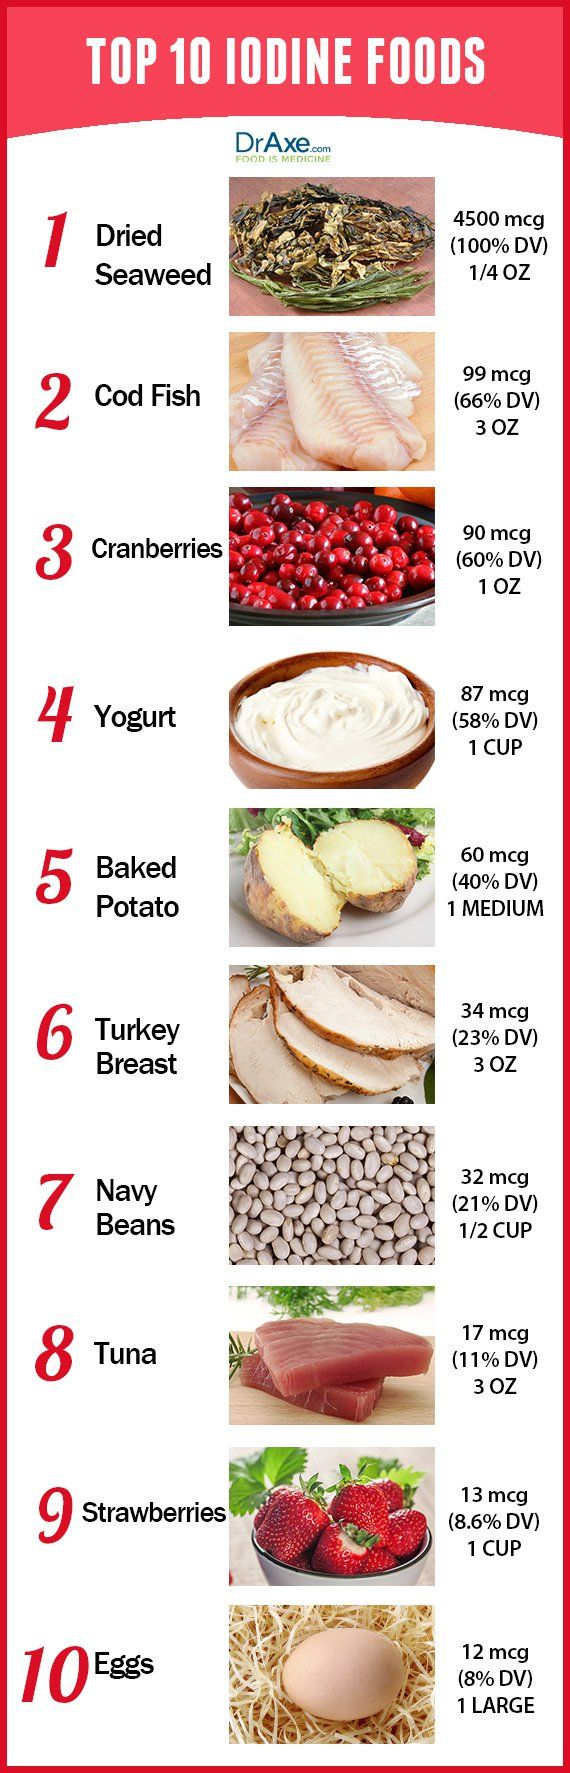 Top 10 Iodine Rich Foods - DrAxe.com